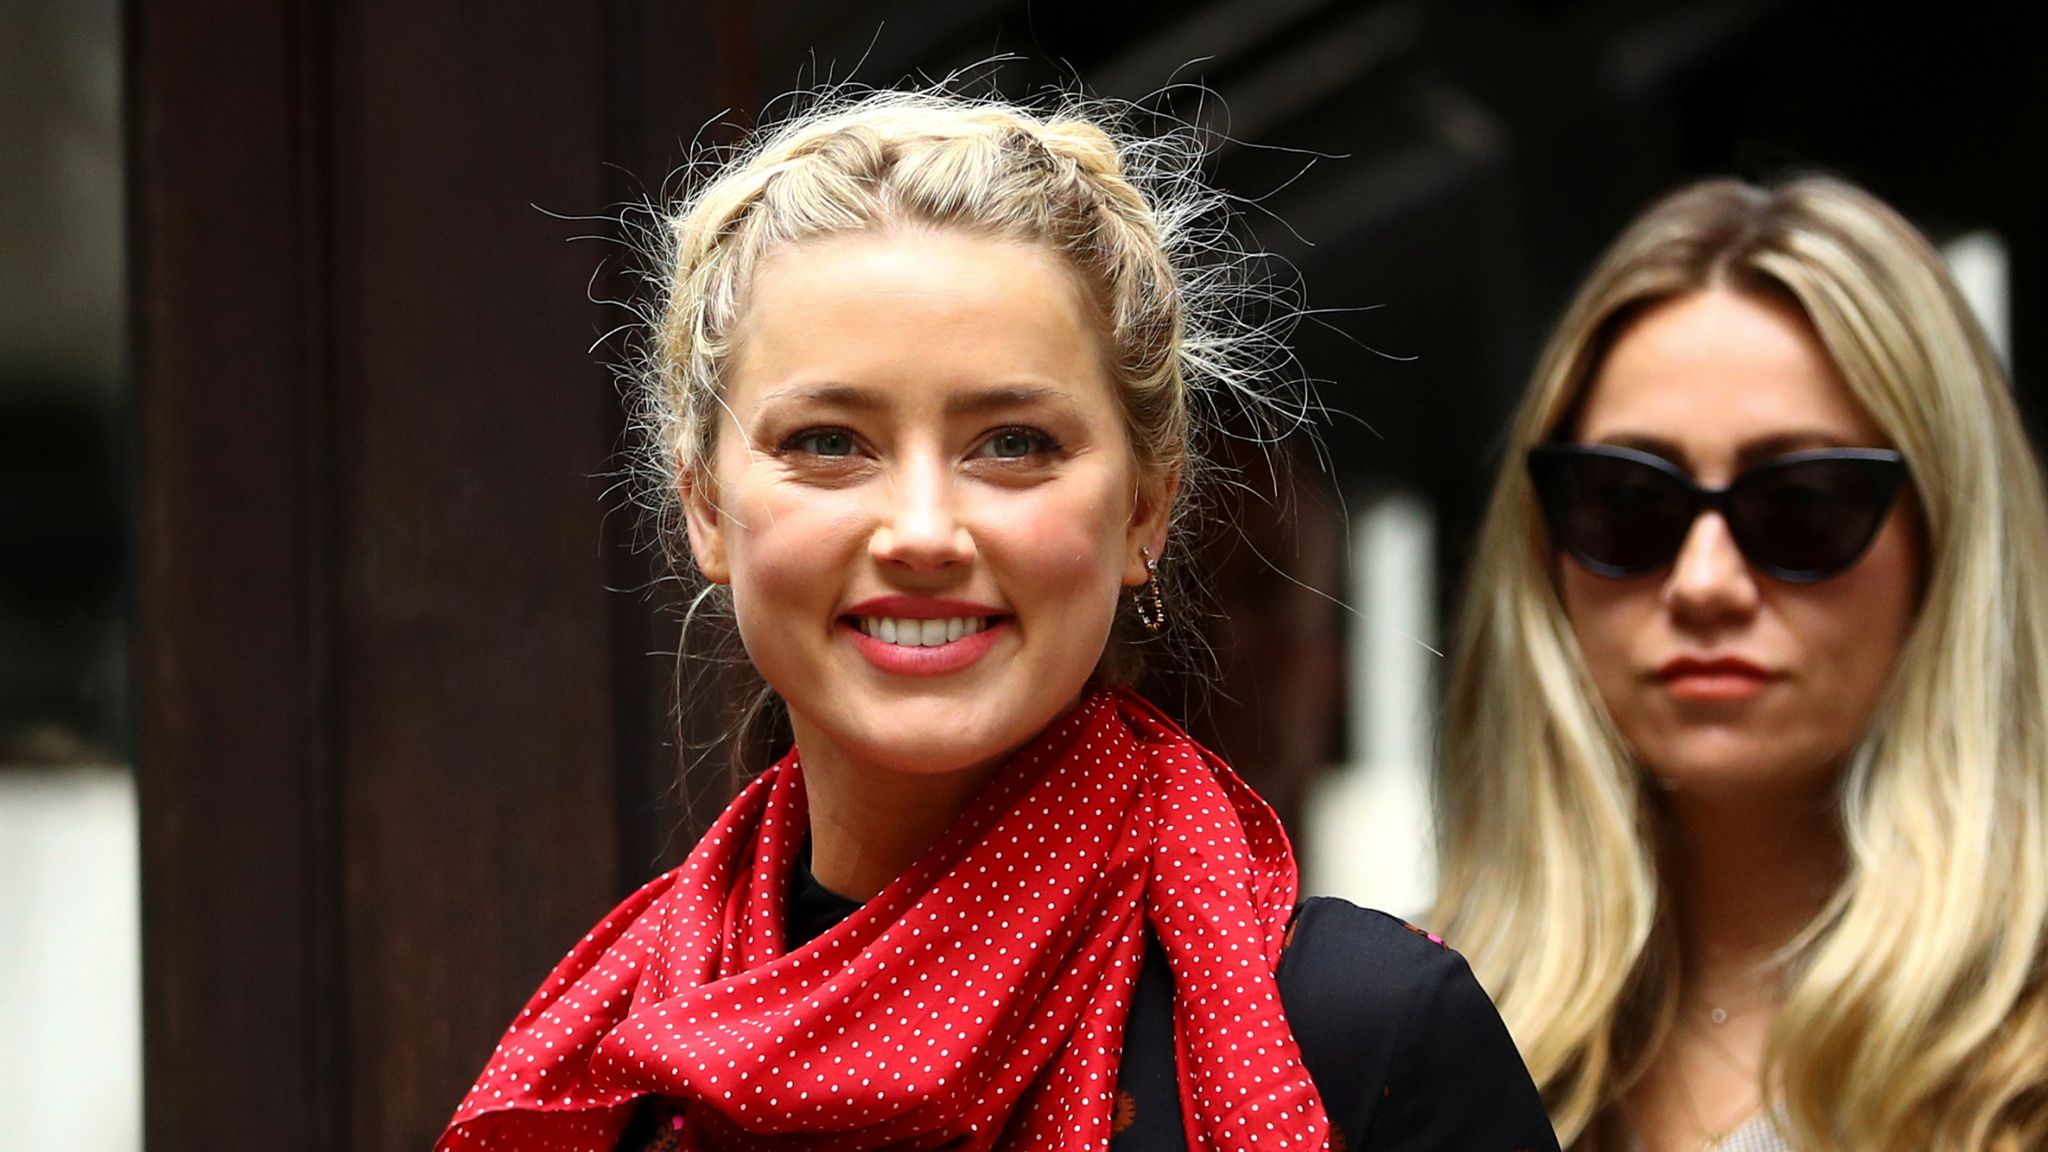 Amber Heard arrives at the High Court on day seven of Johnny Depp's libel action against the publishers of The Sun